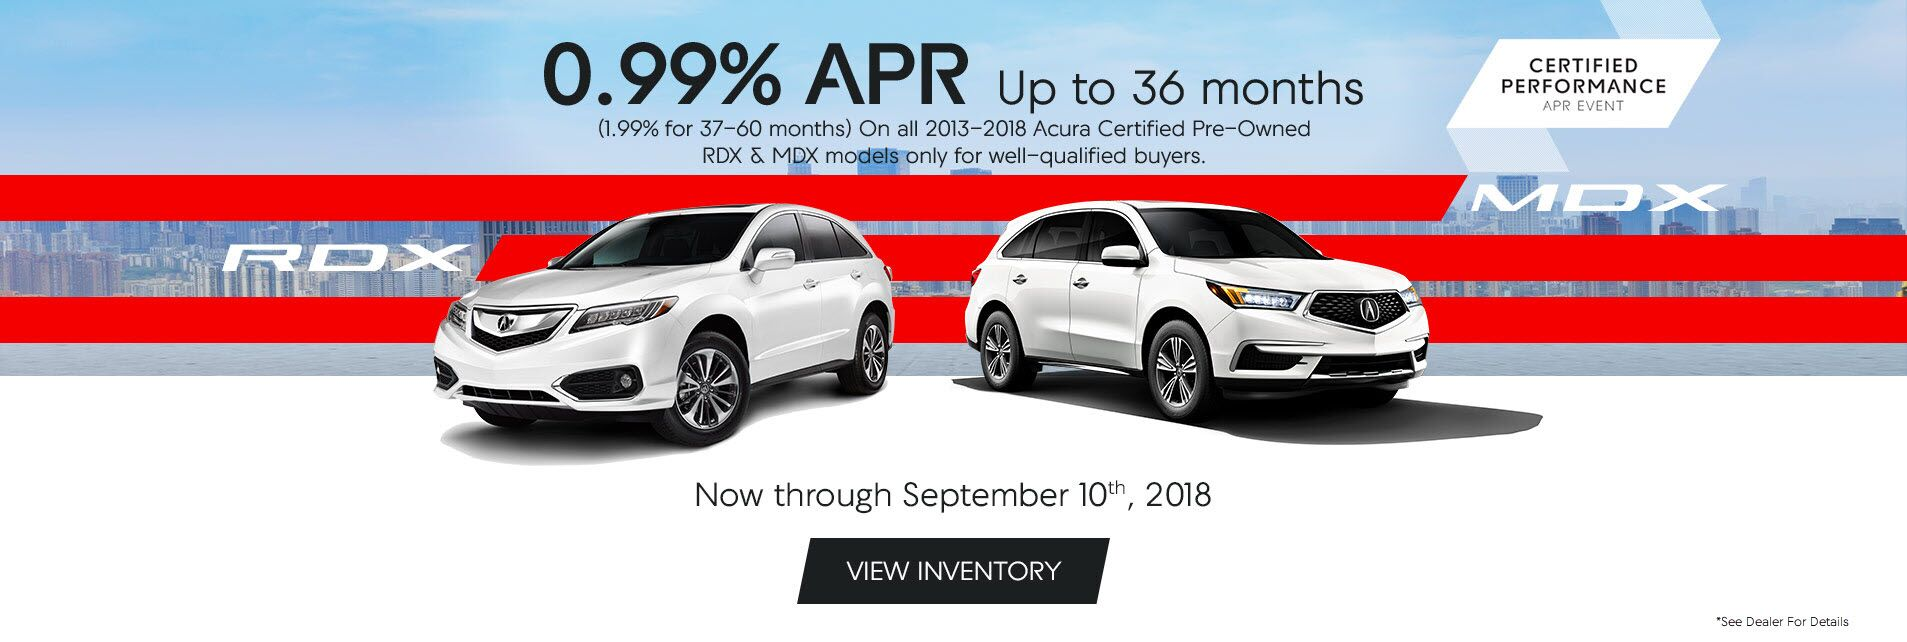 Acura Dealership Fort Myers FL | Used Cars Scanlon Acura on gmc sales event, dodge sales event, subaru sales event, mitsubishi sales event, infiniti sales event, jaguar sales event, honda sales event,